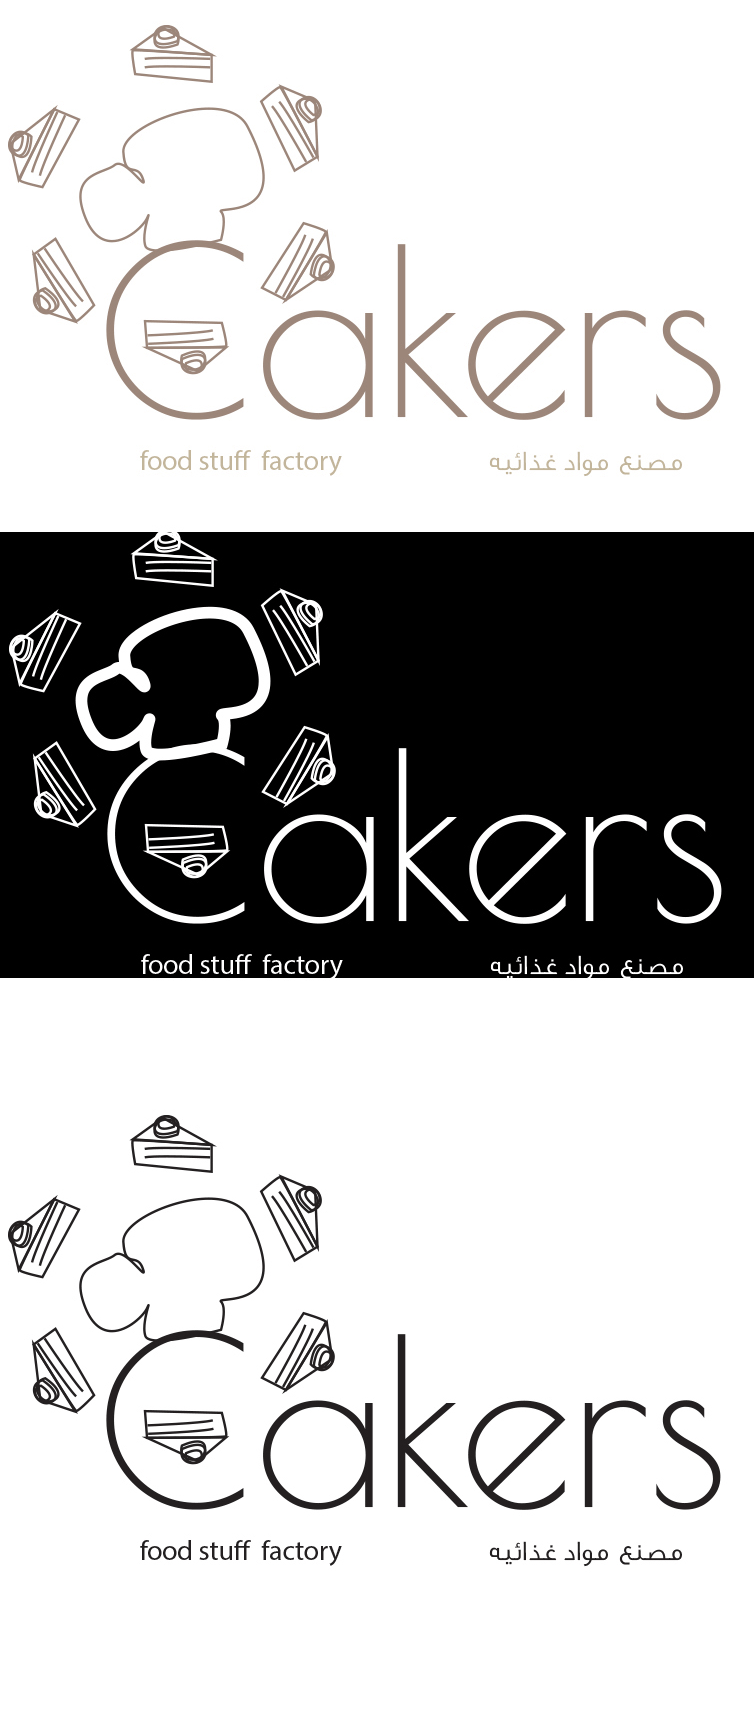 cakers option 1 logo variations